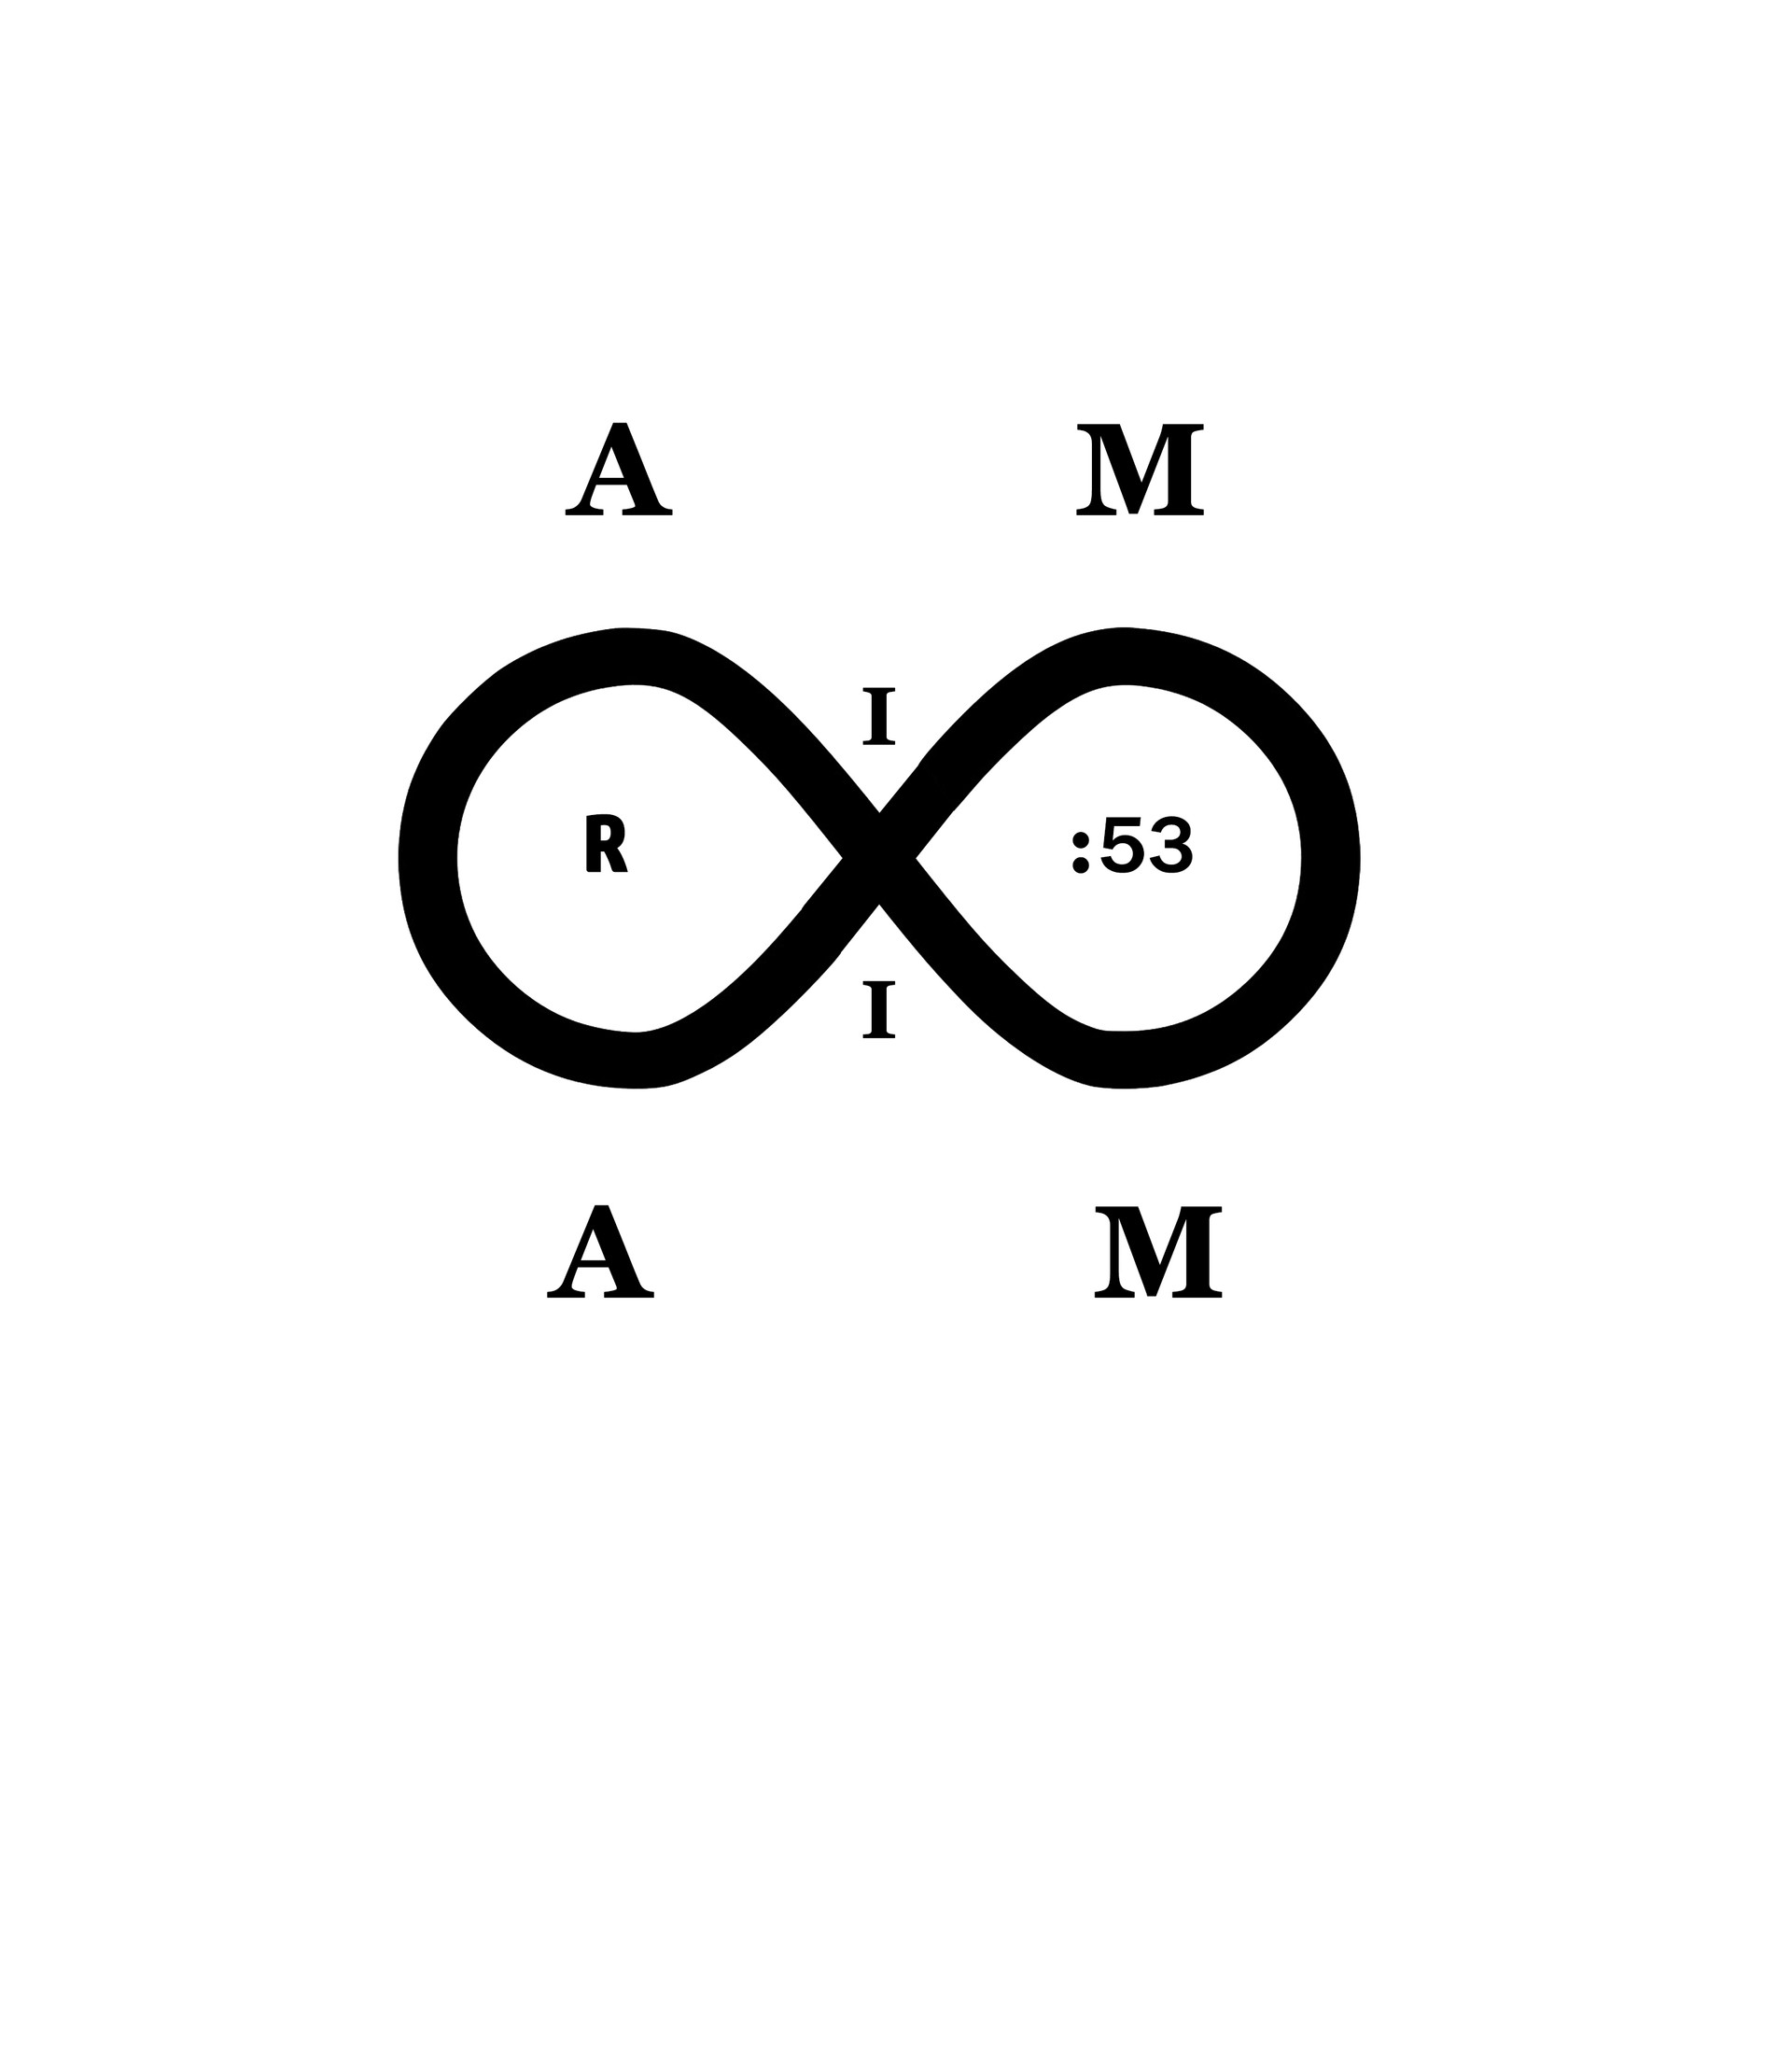 AIM LOGO DESIGN